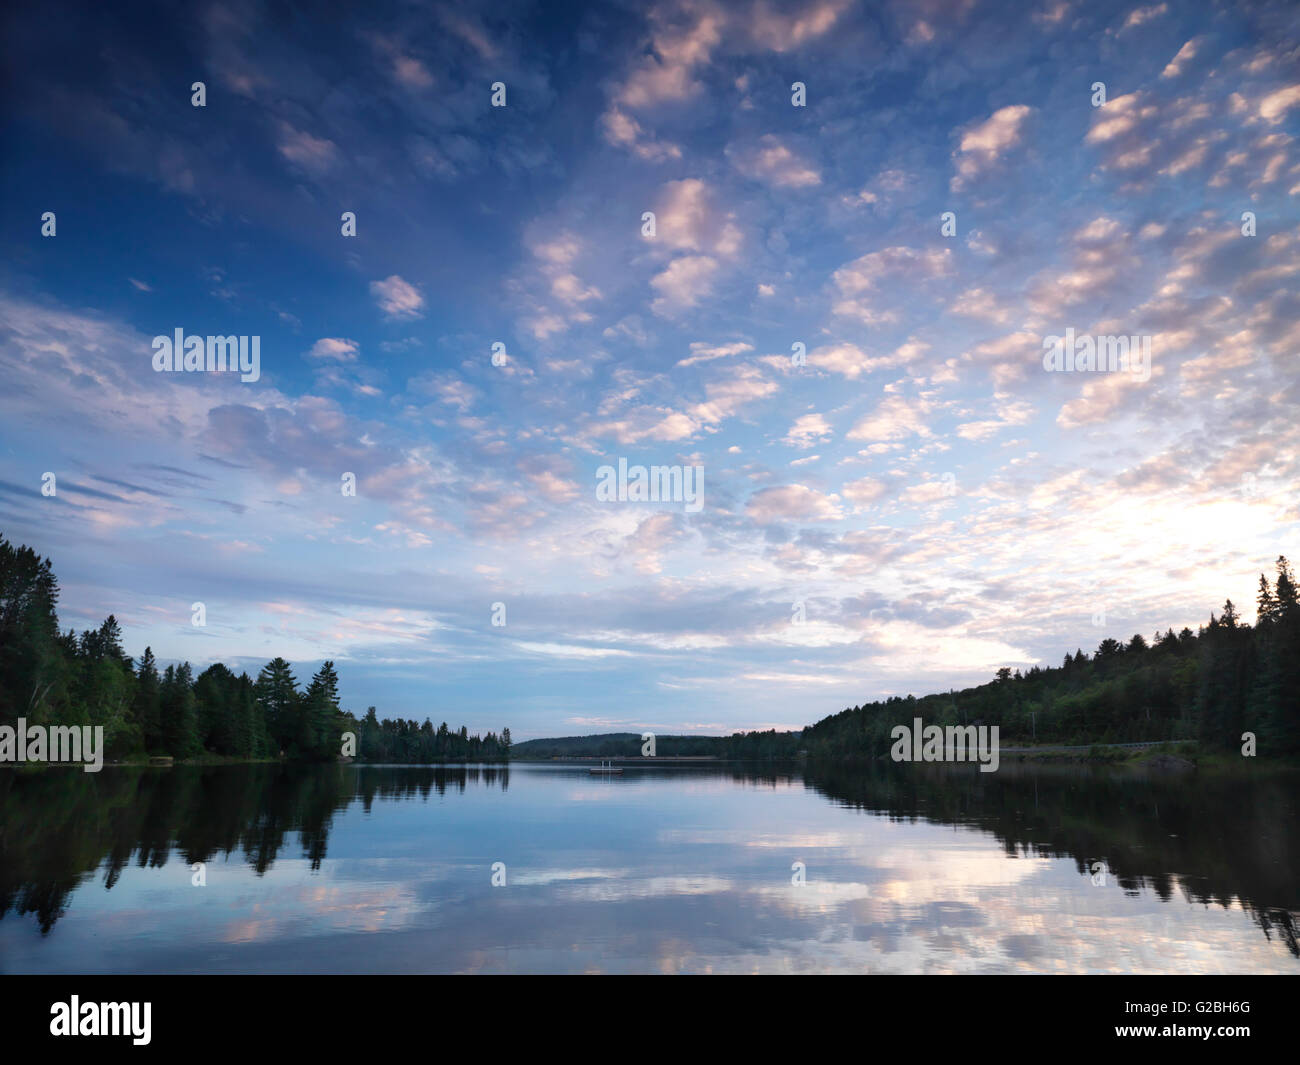 Lake of Two Rivers, evening mood, Algonquin Provincial Park, Ontario, Canada - Stock Image